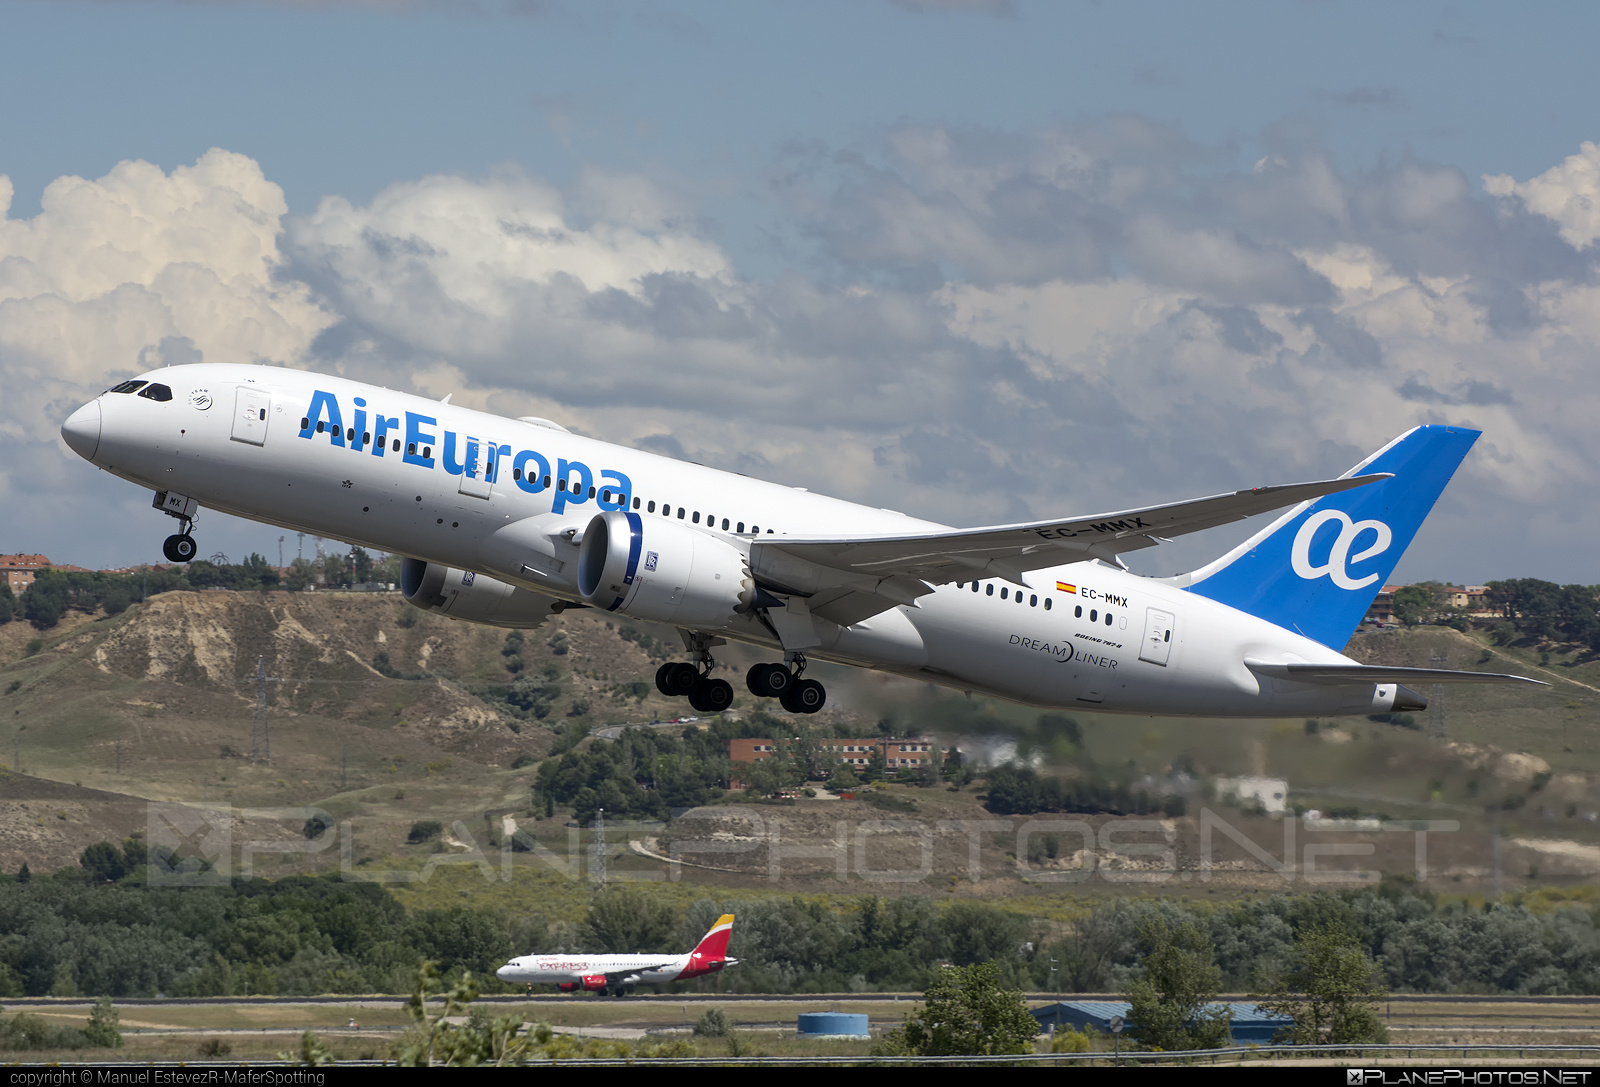 Boeing 787-8 Dreamliner - EC-MMX operated by Air Europa #b787 #boeing #boeing787 #dreamliner